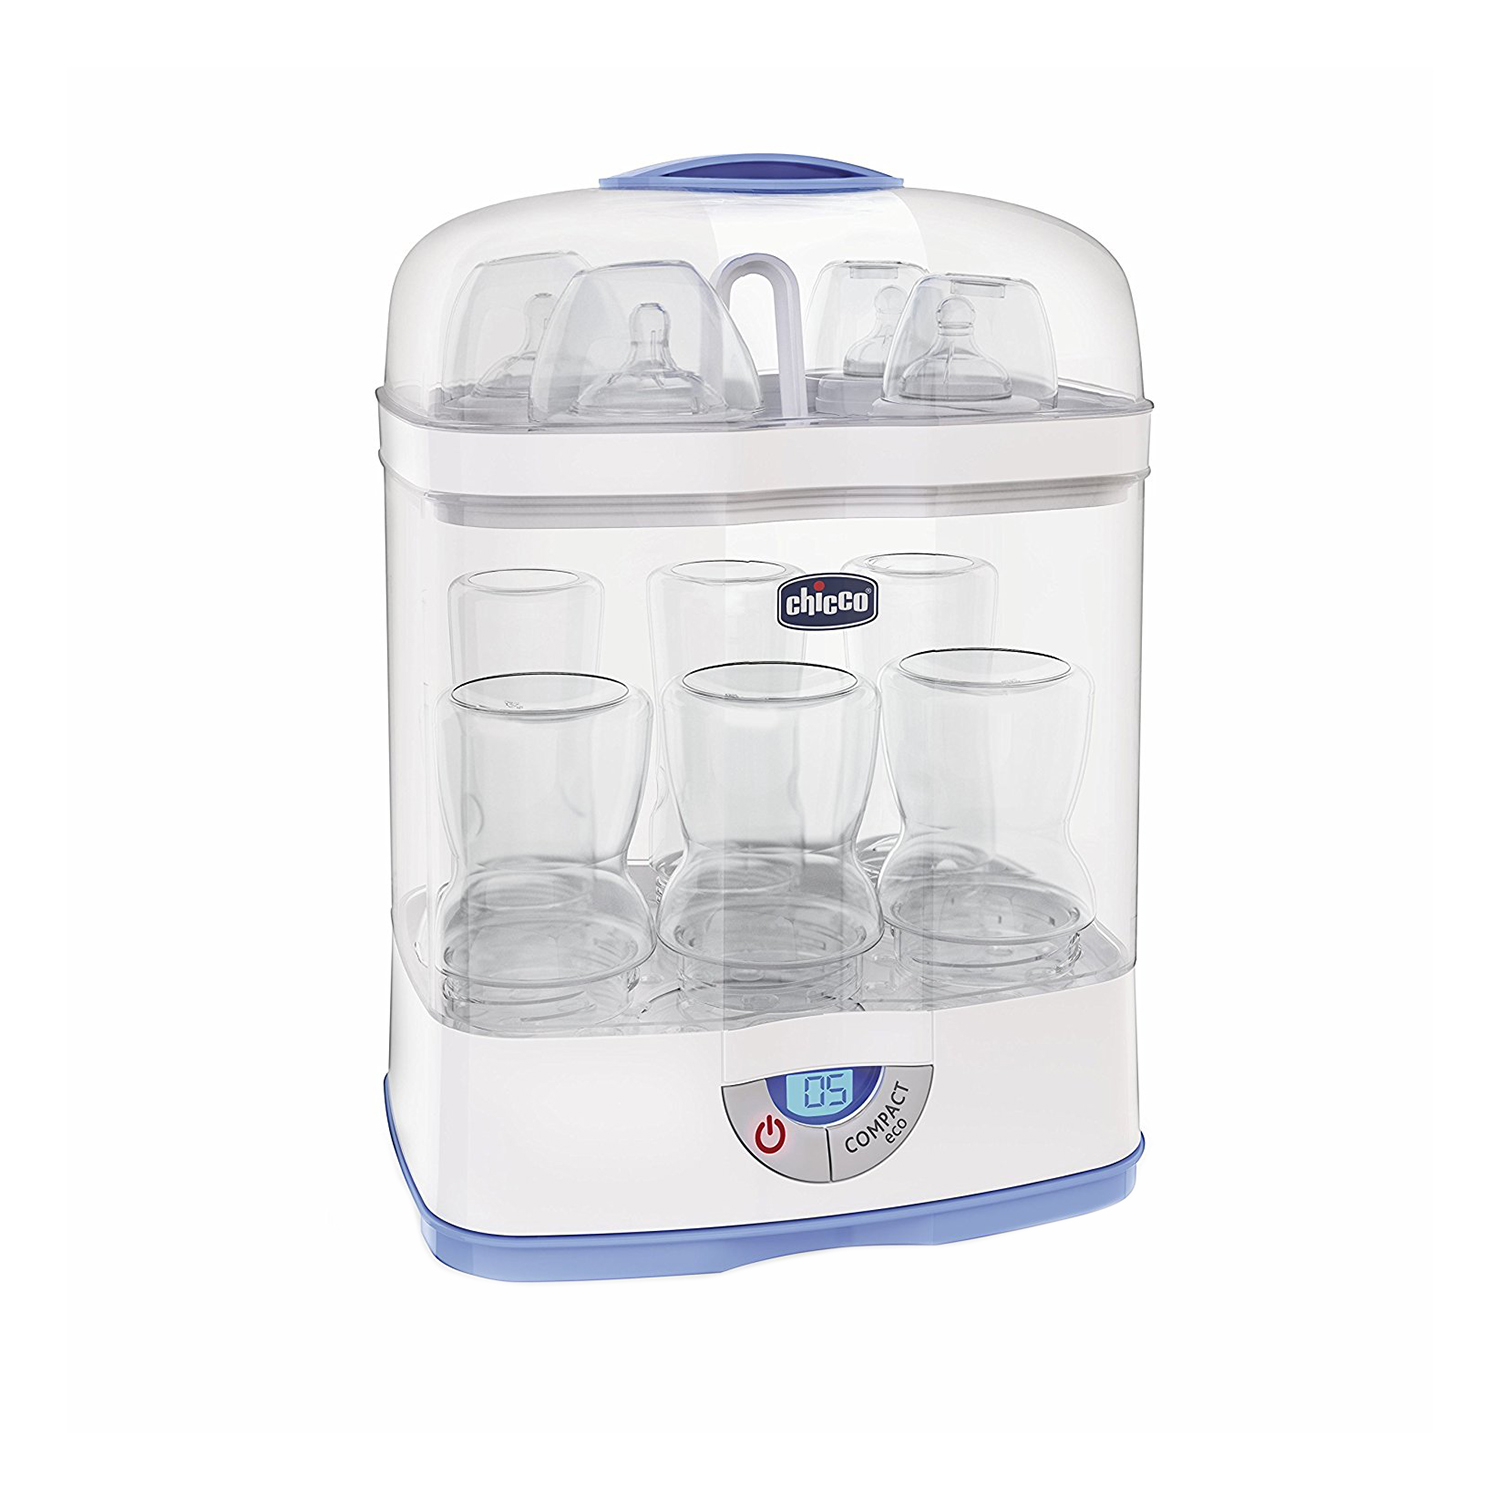 Chicco 7391 3 In 1 Steriliser